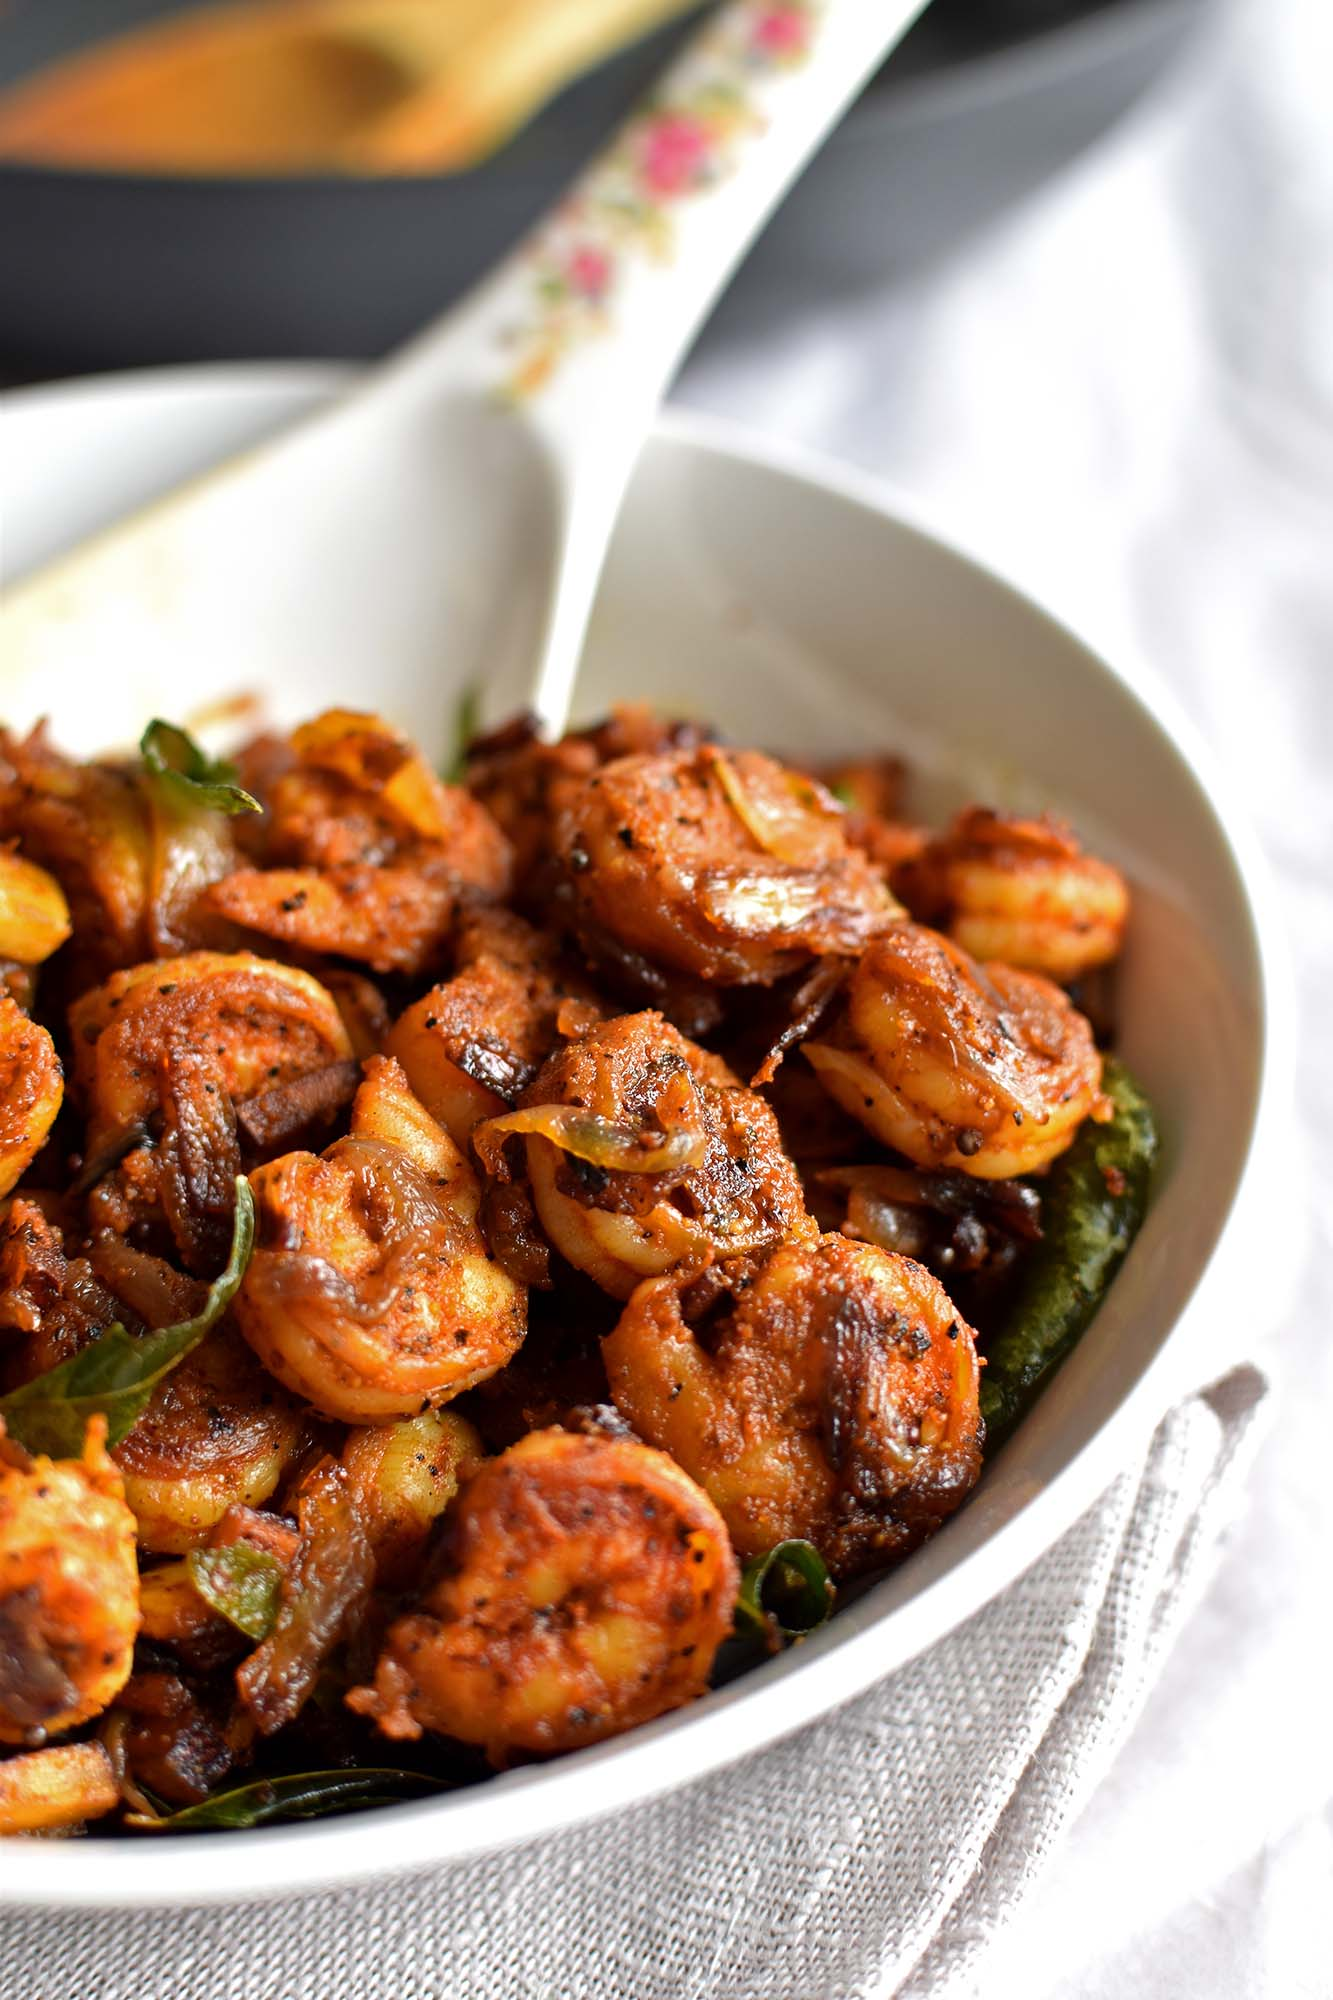 Prawn Roast - Pepper Delight #pepperdelightblog #recipe #prawn #shrimp #asian #chemmeen #indian #kerala #keralastyleprawnroast #seafood #easy #prawnrecipes